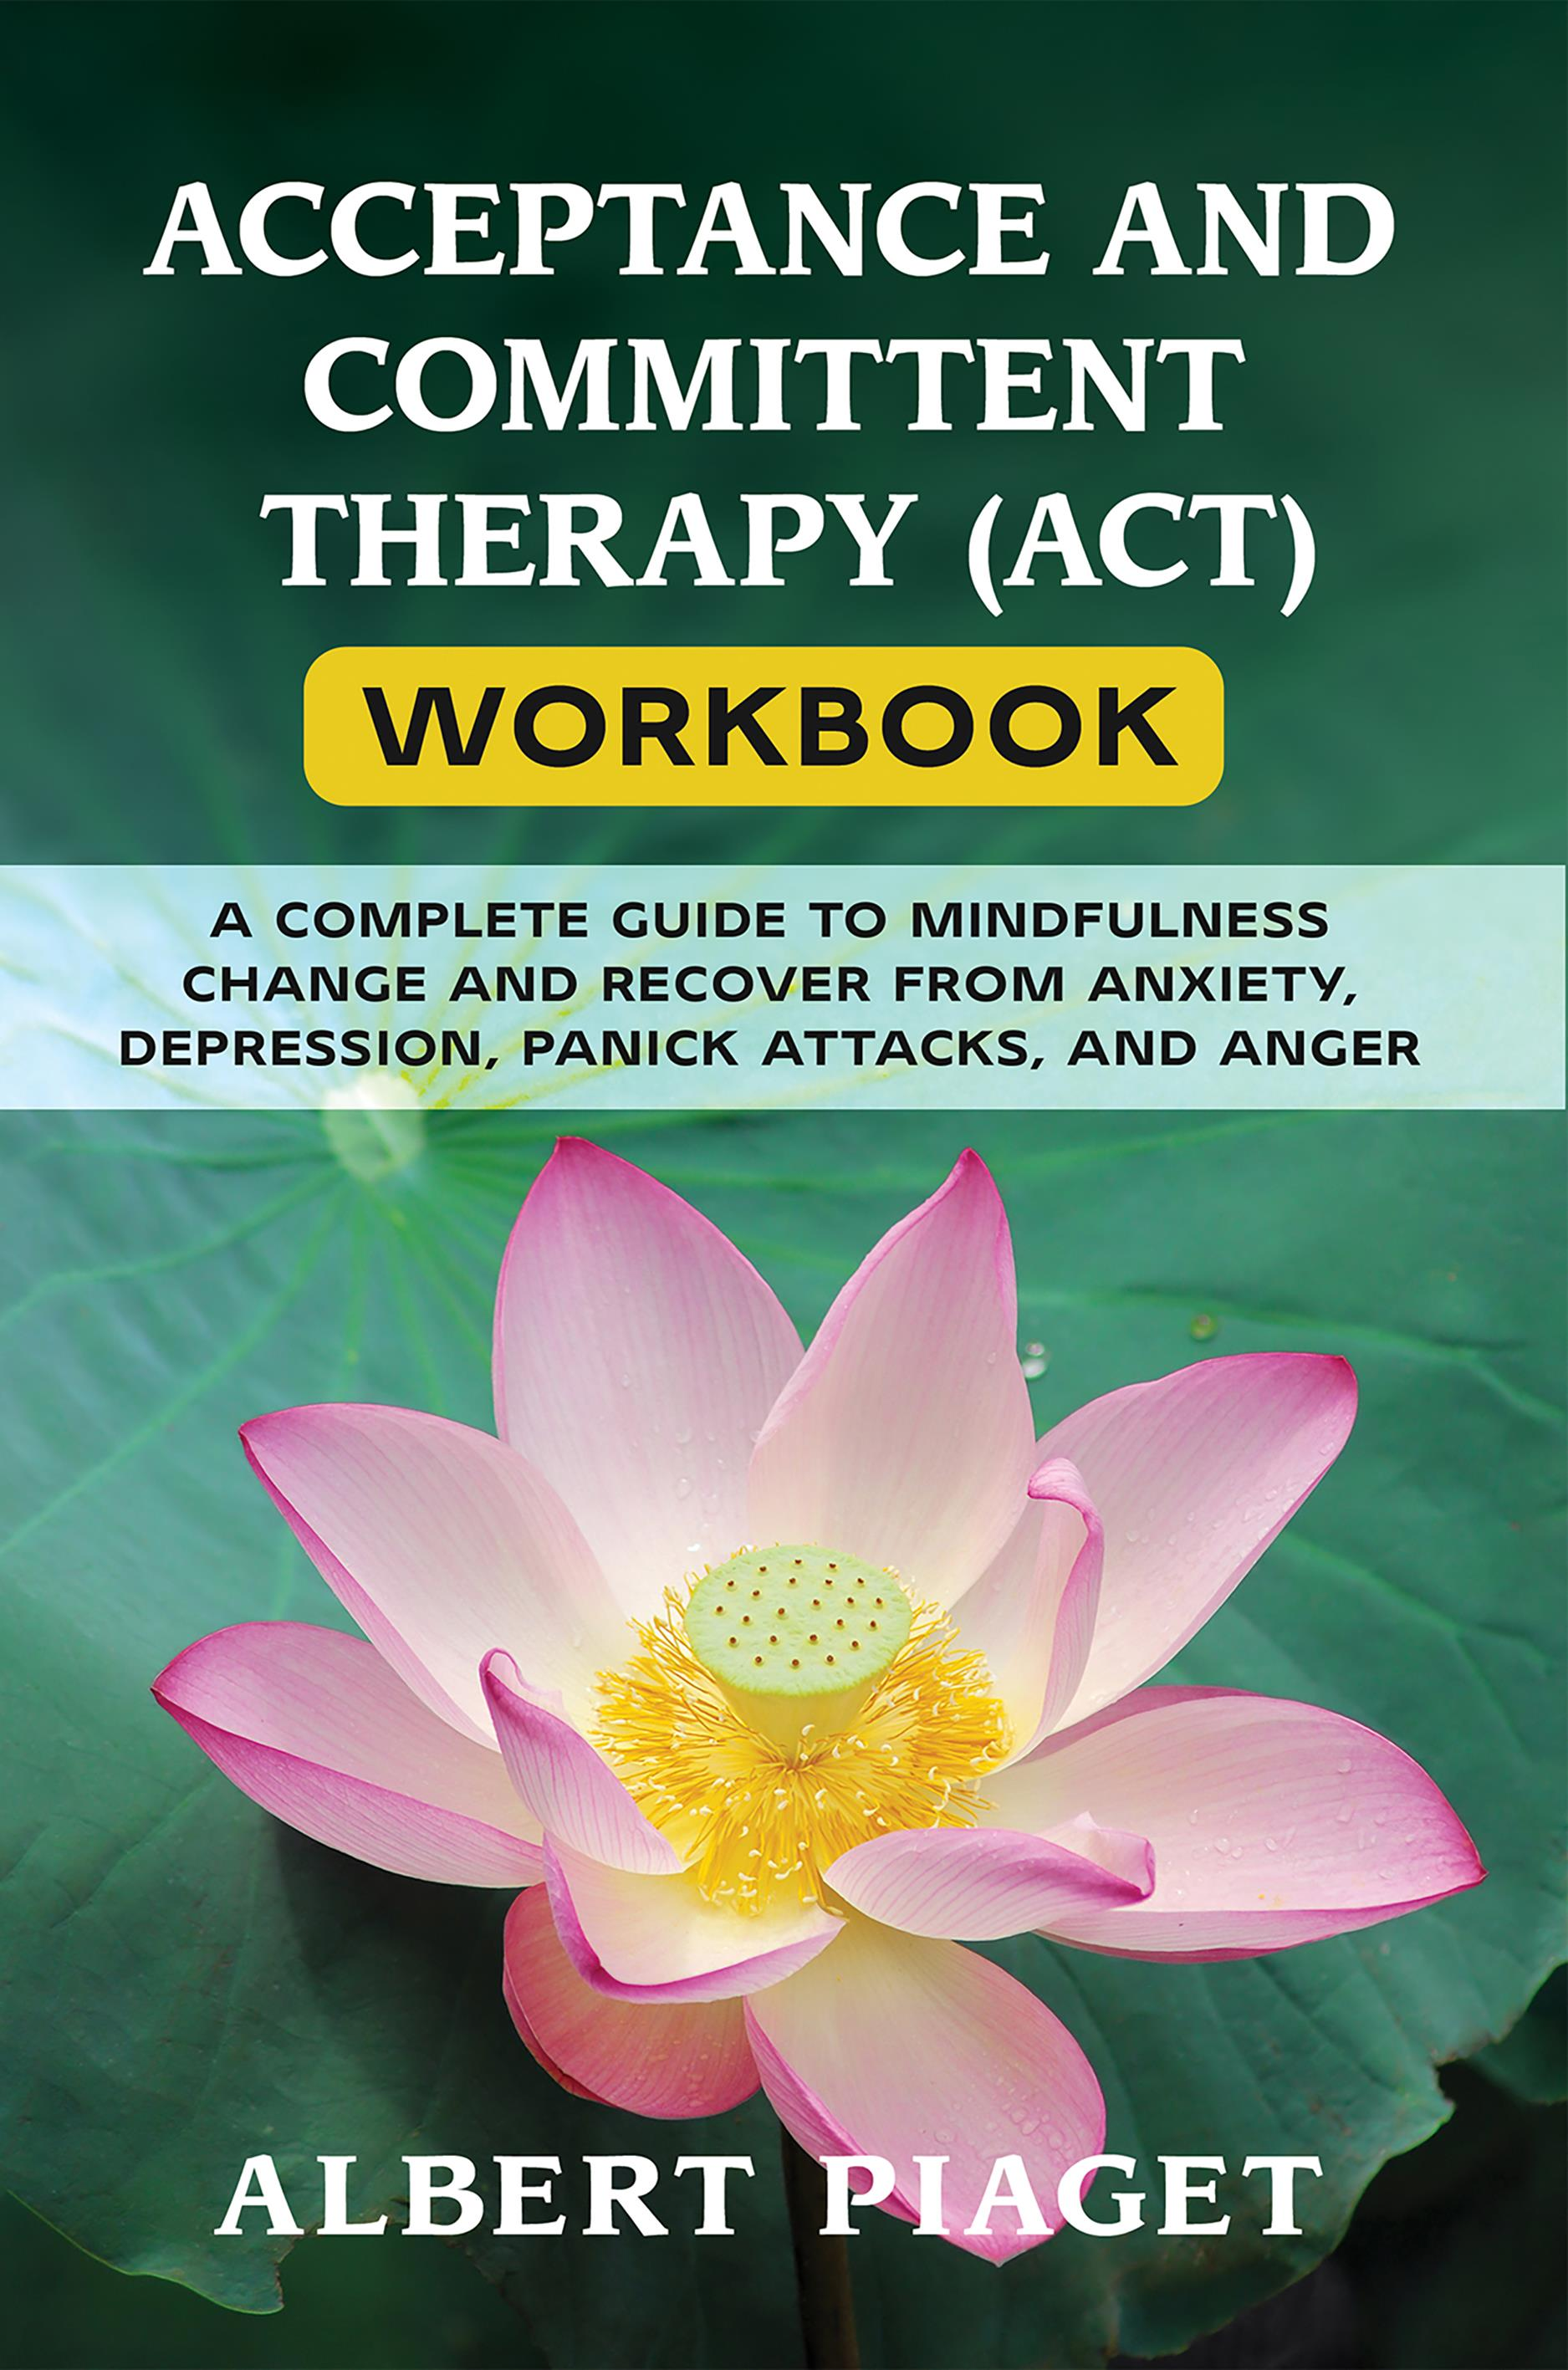 Acceptance and committent therapy (act) workbook